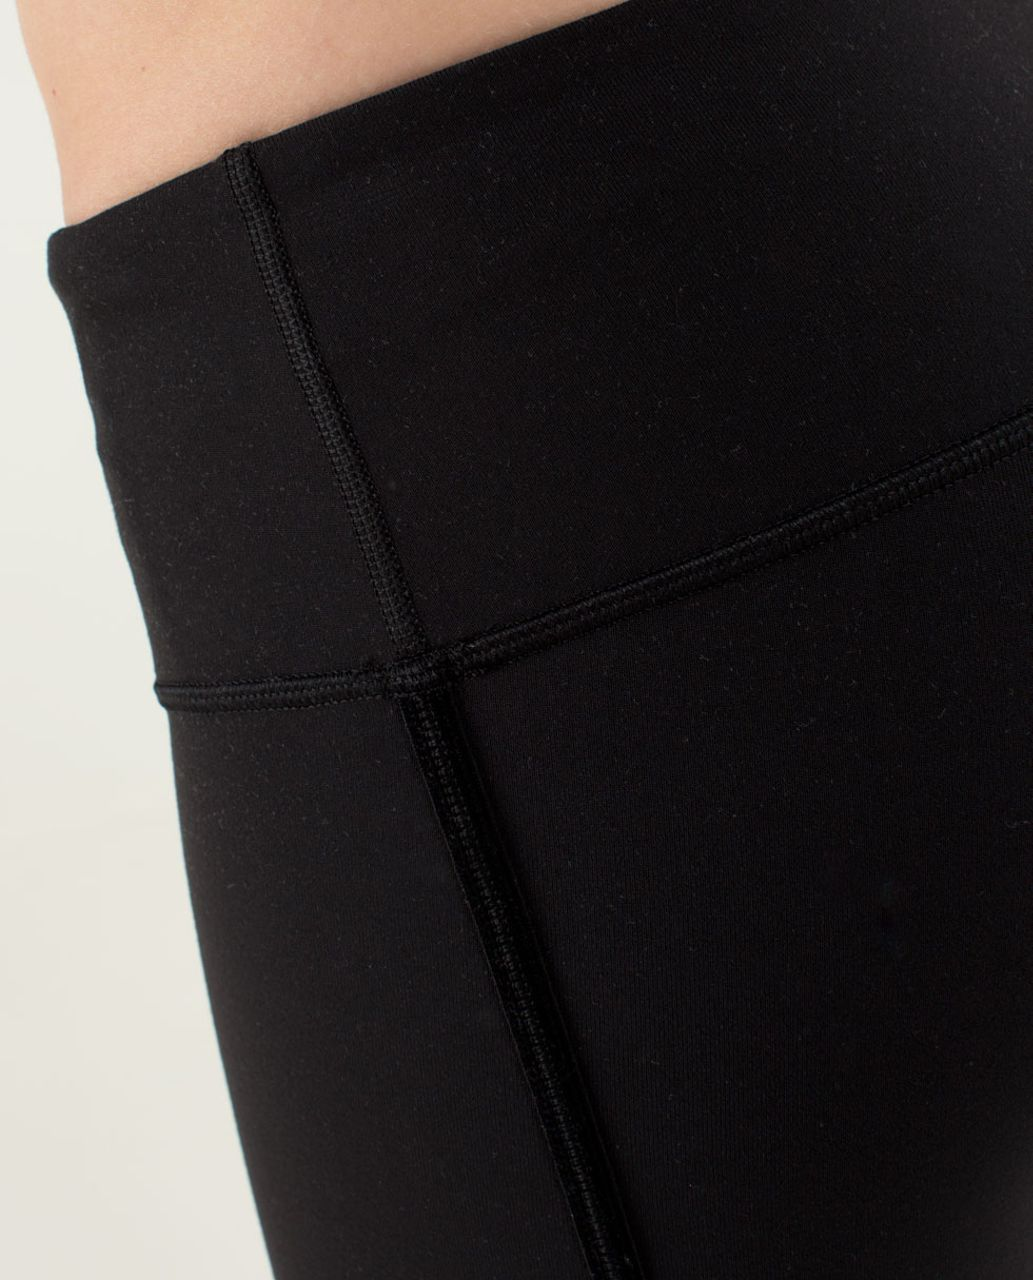 Lululemon Wunder Under Crop *Bow - Black